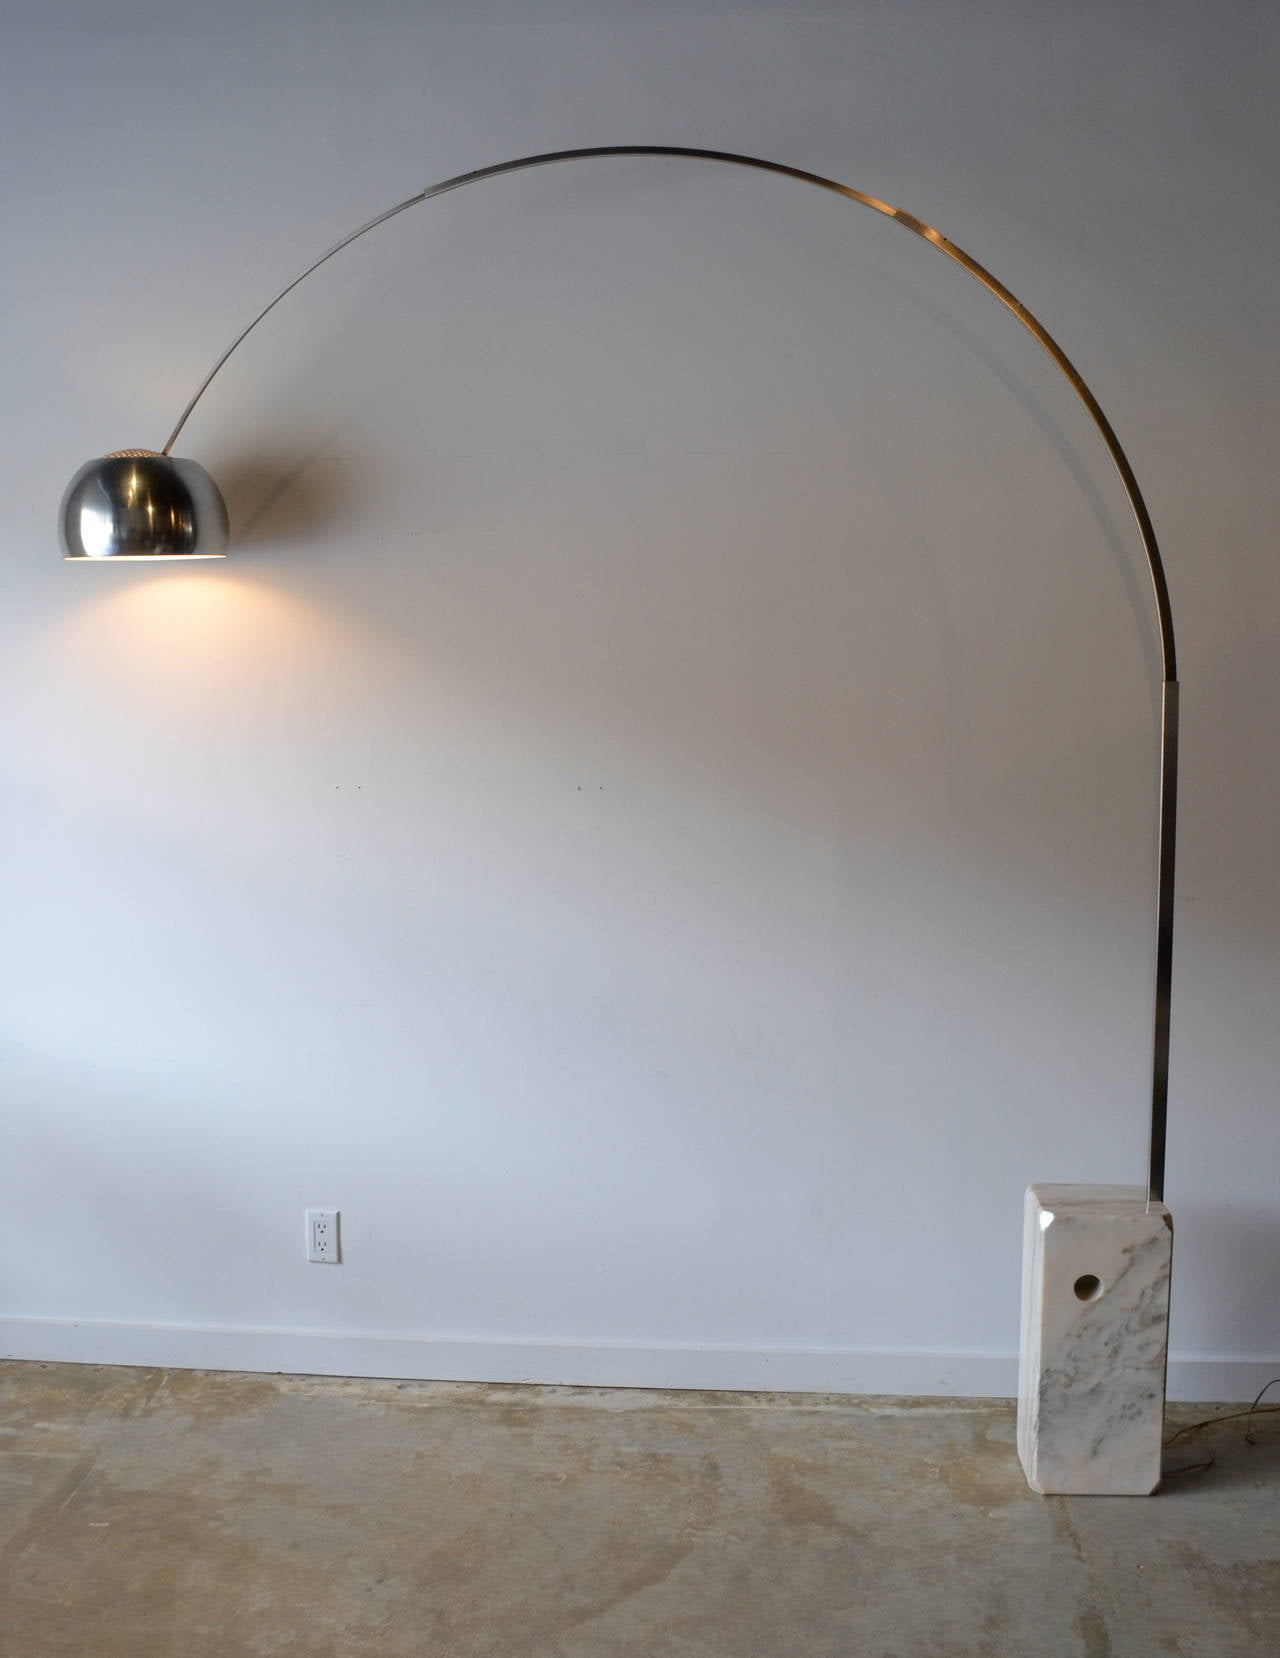 Arco floor lamp by castiglioni for flos italy at 1stdibs for Flos castiglioni arco